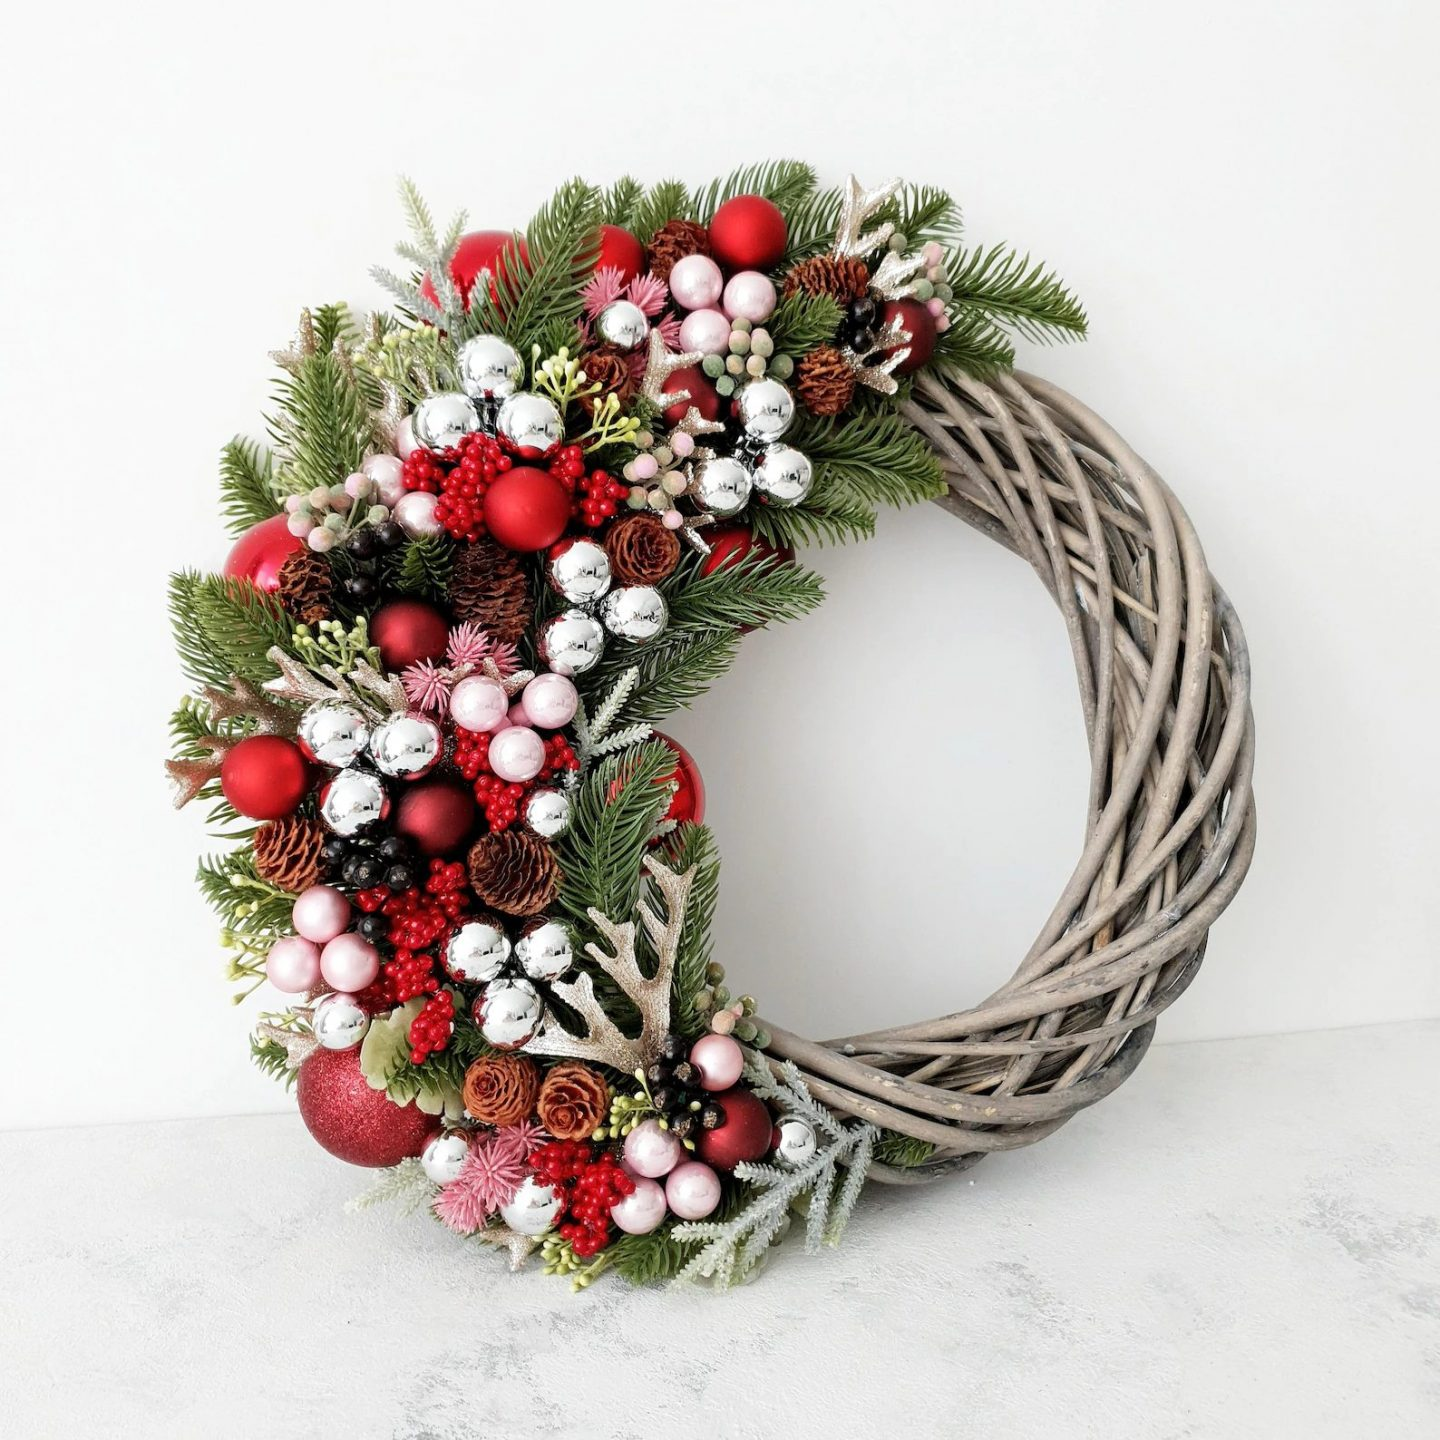 Elegant Christmas wreath with small red and silver baubles